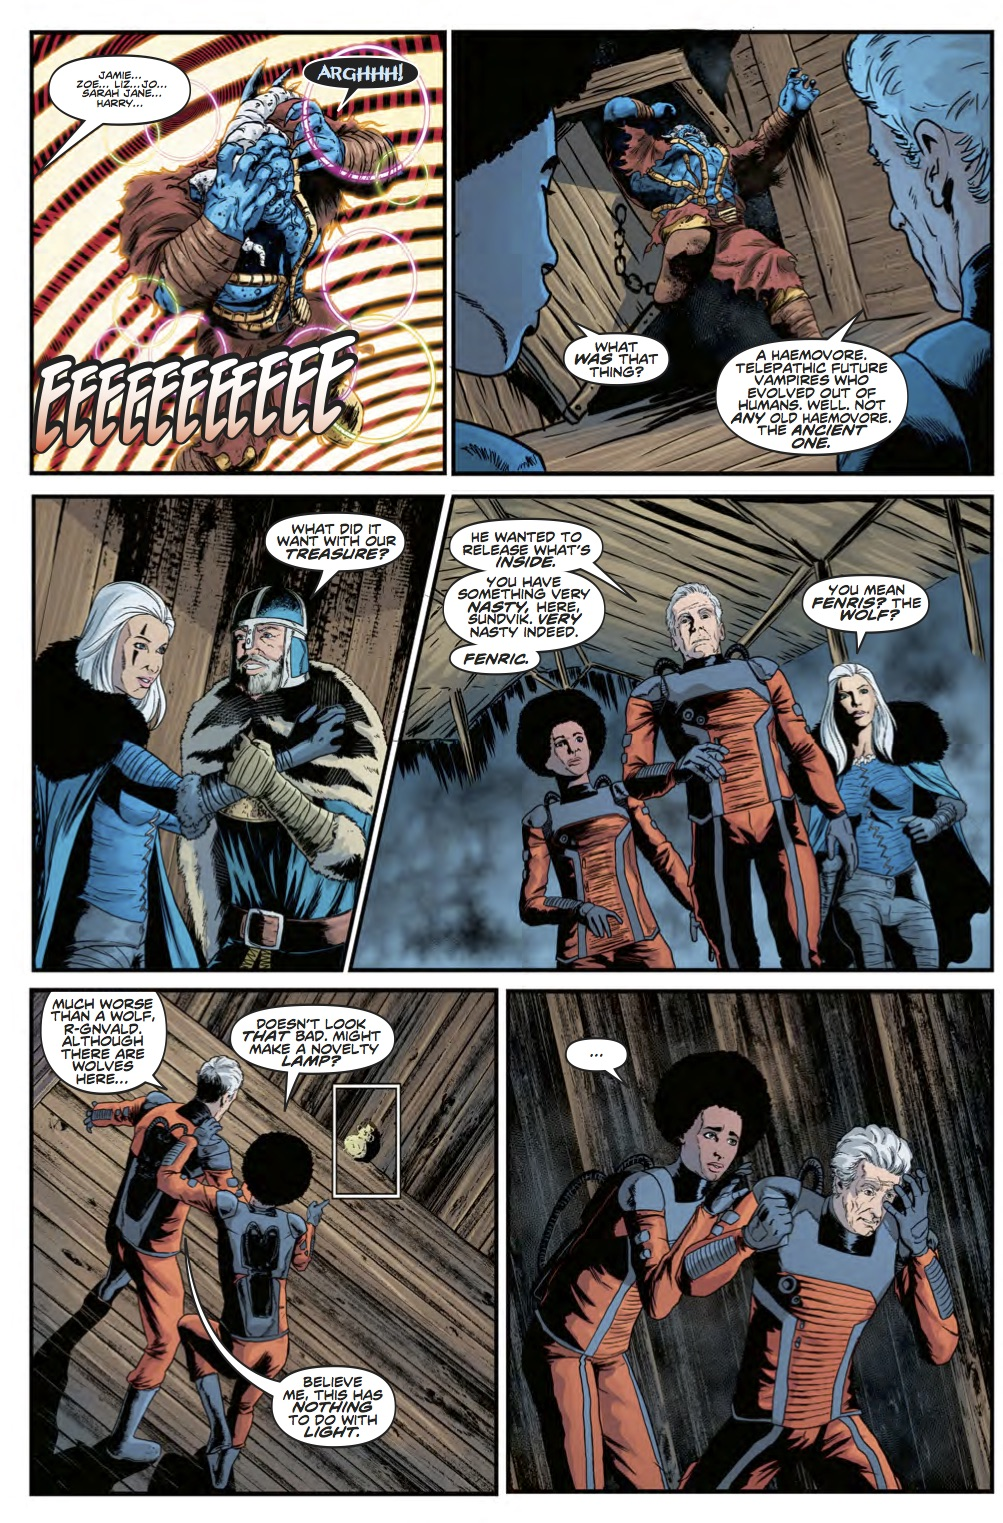 Twelfth Doctor Year Three #8 - Page 2 (Credit: Titan )